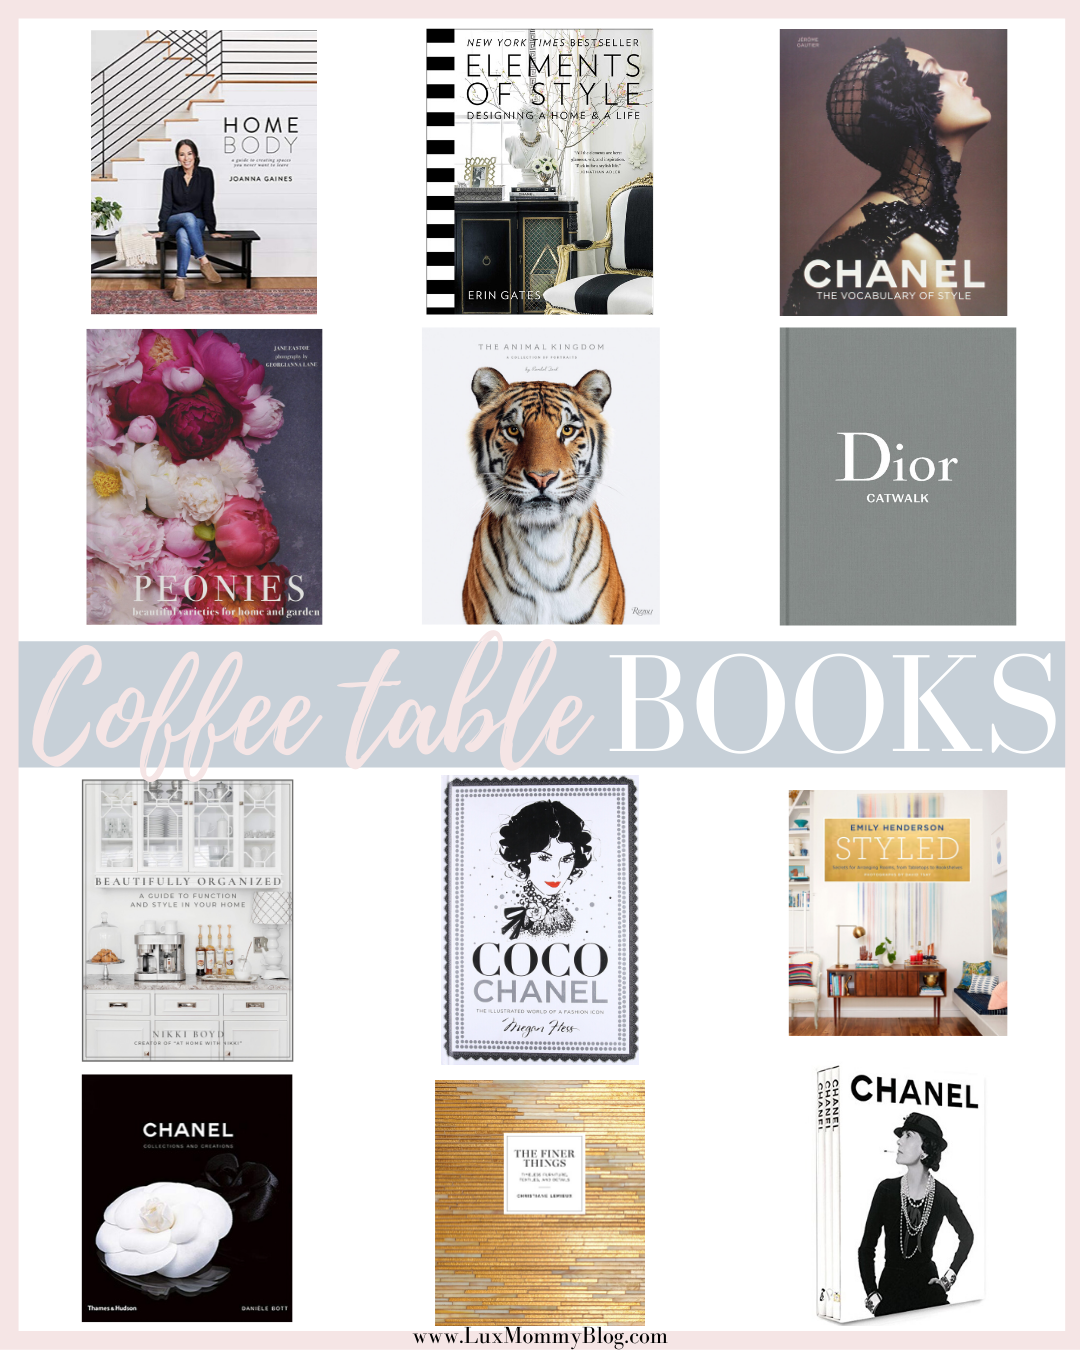 Houston Fashion Blogger LuxMommy Shares Her Coffee Table Books Collection